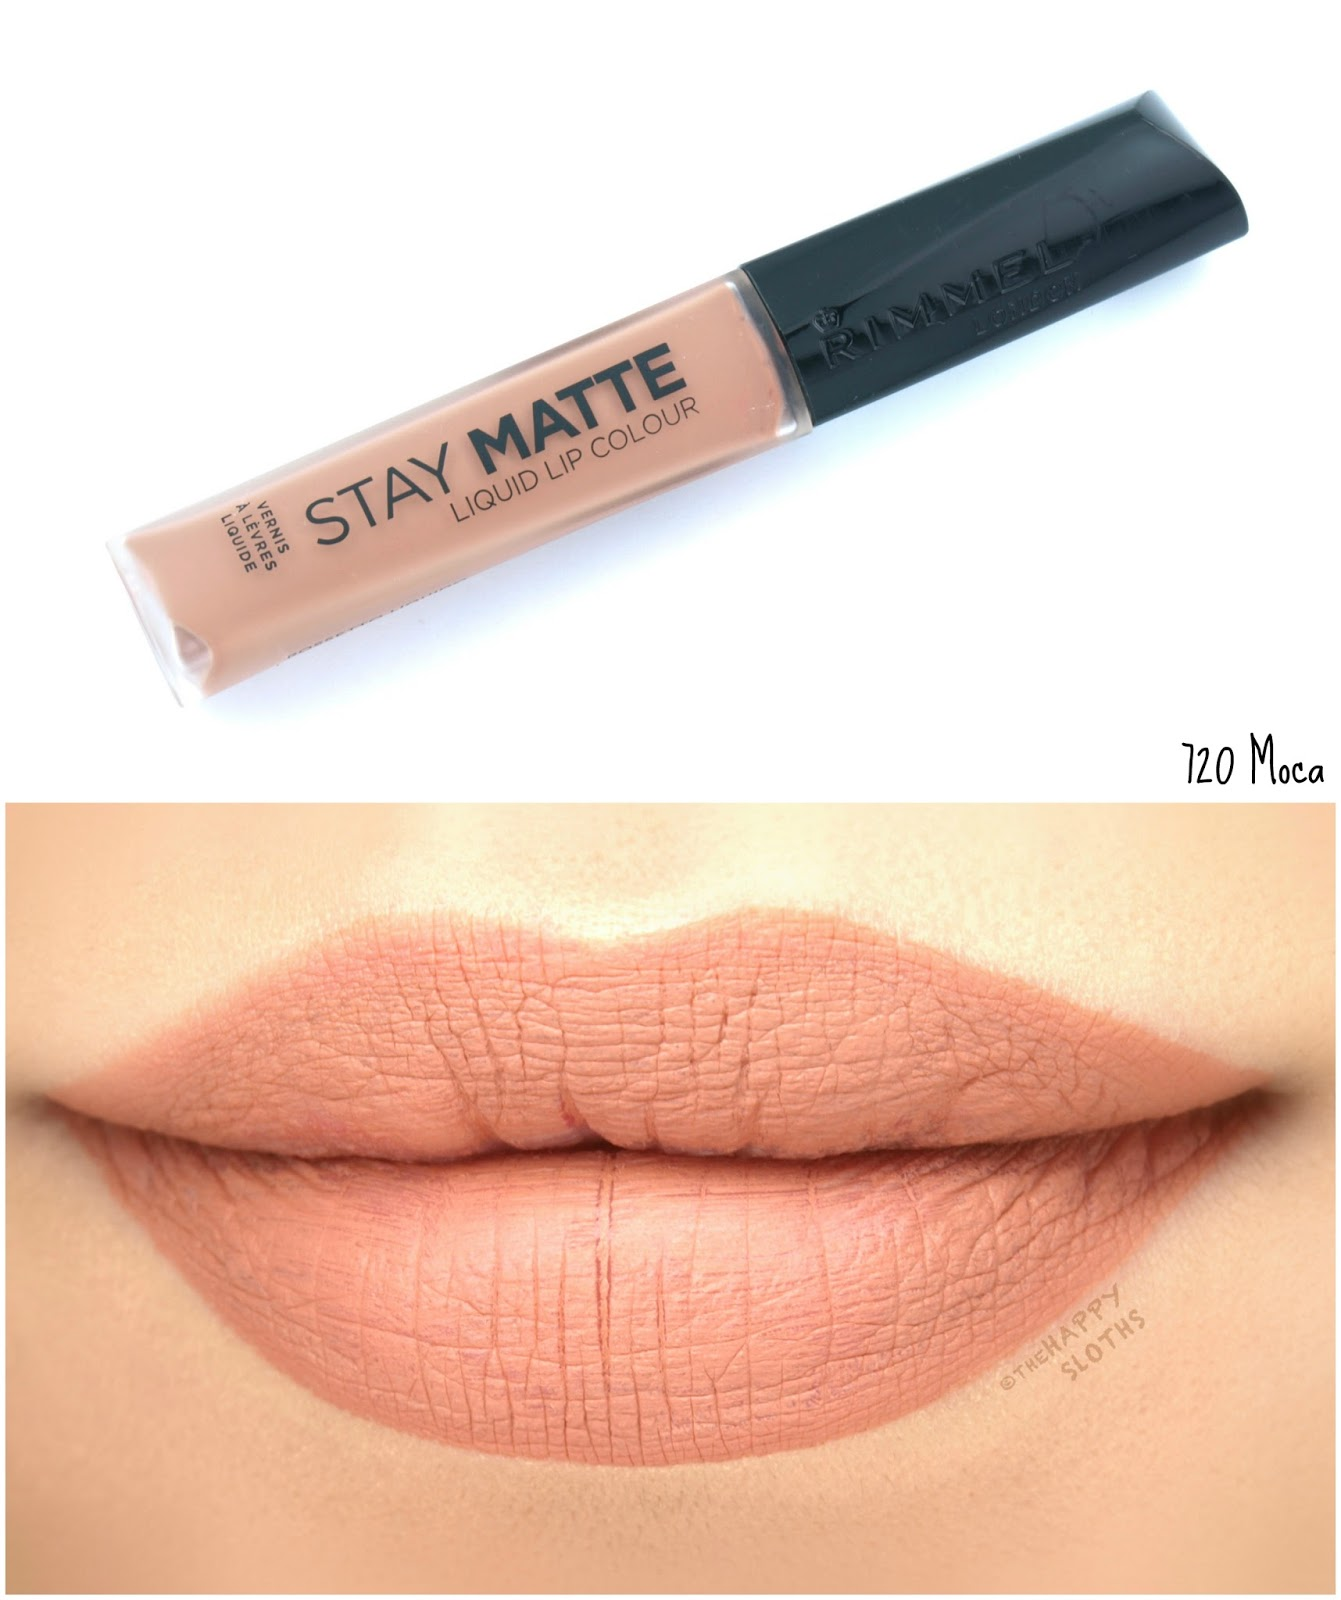 Rimmel London Stay Matte Liquid Lip Colour | 720 Moca: Review and Swatches